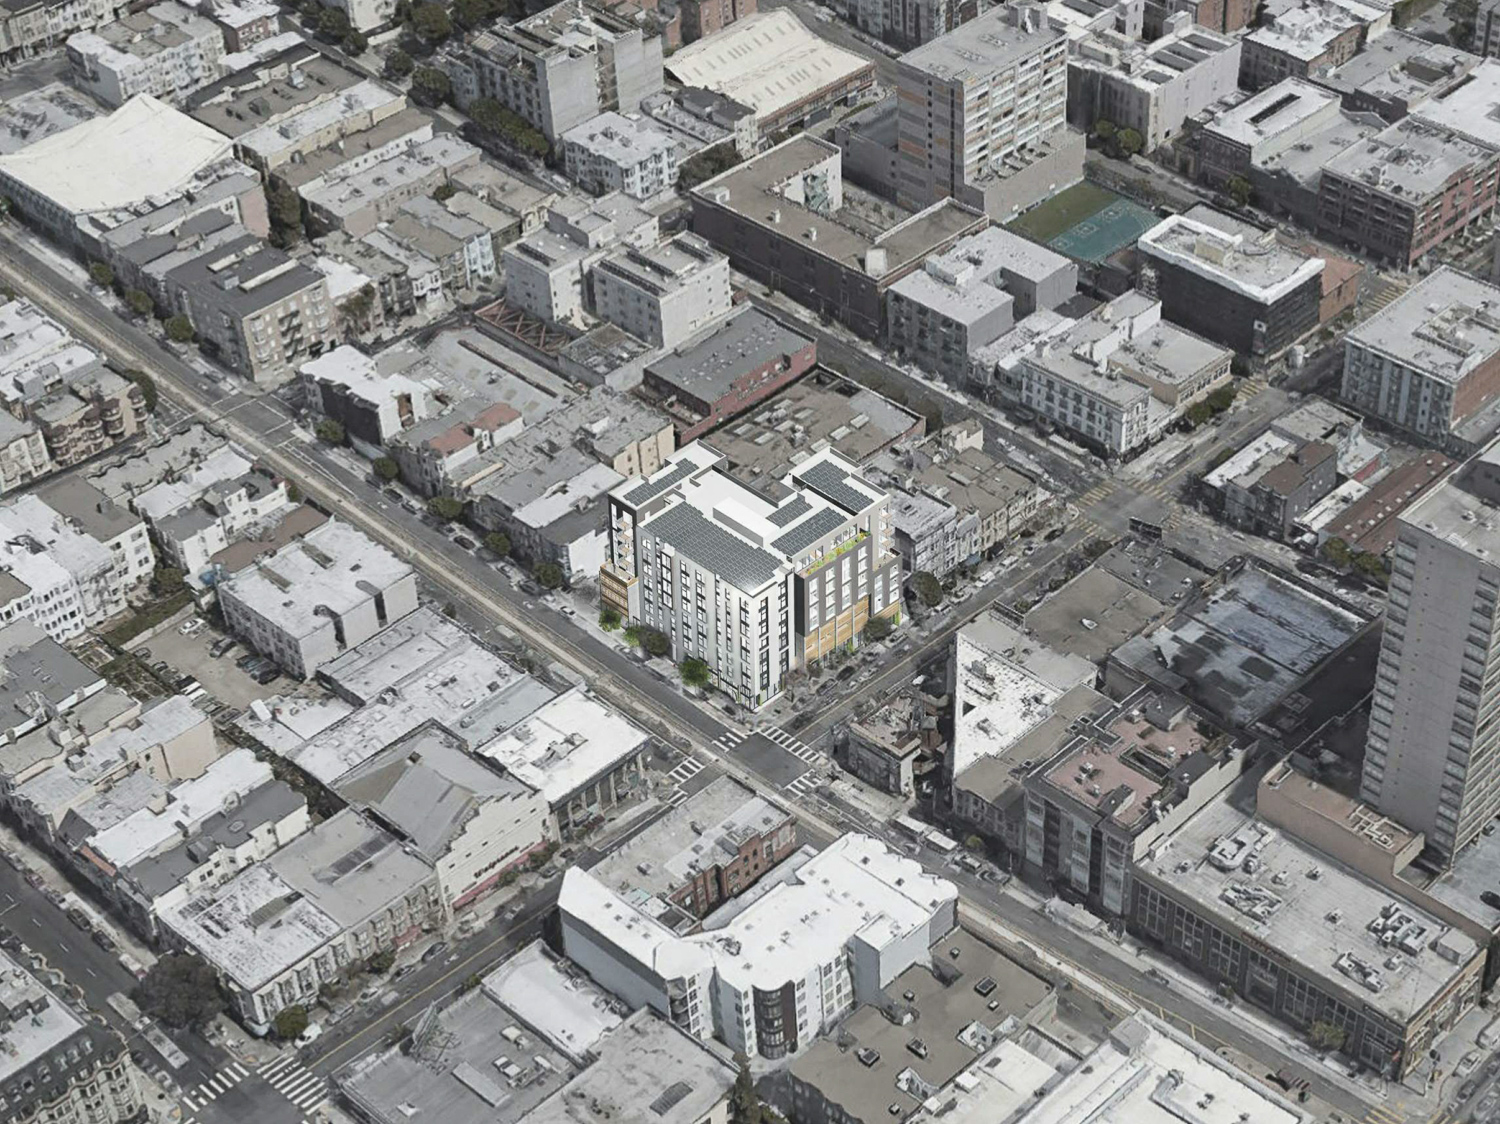 1567 California Street aerial view, rendering by David Baker Architects